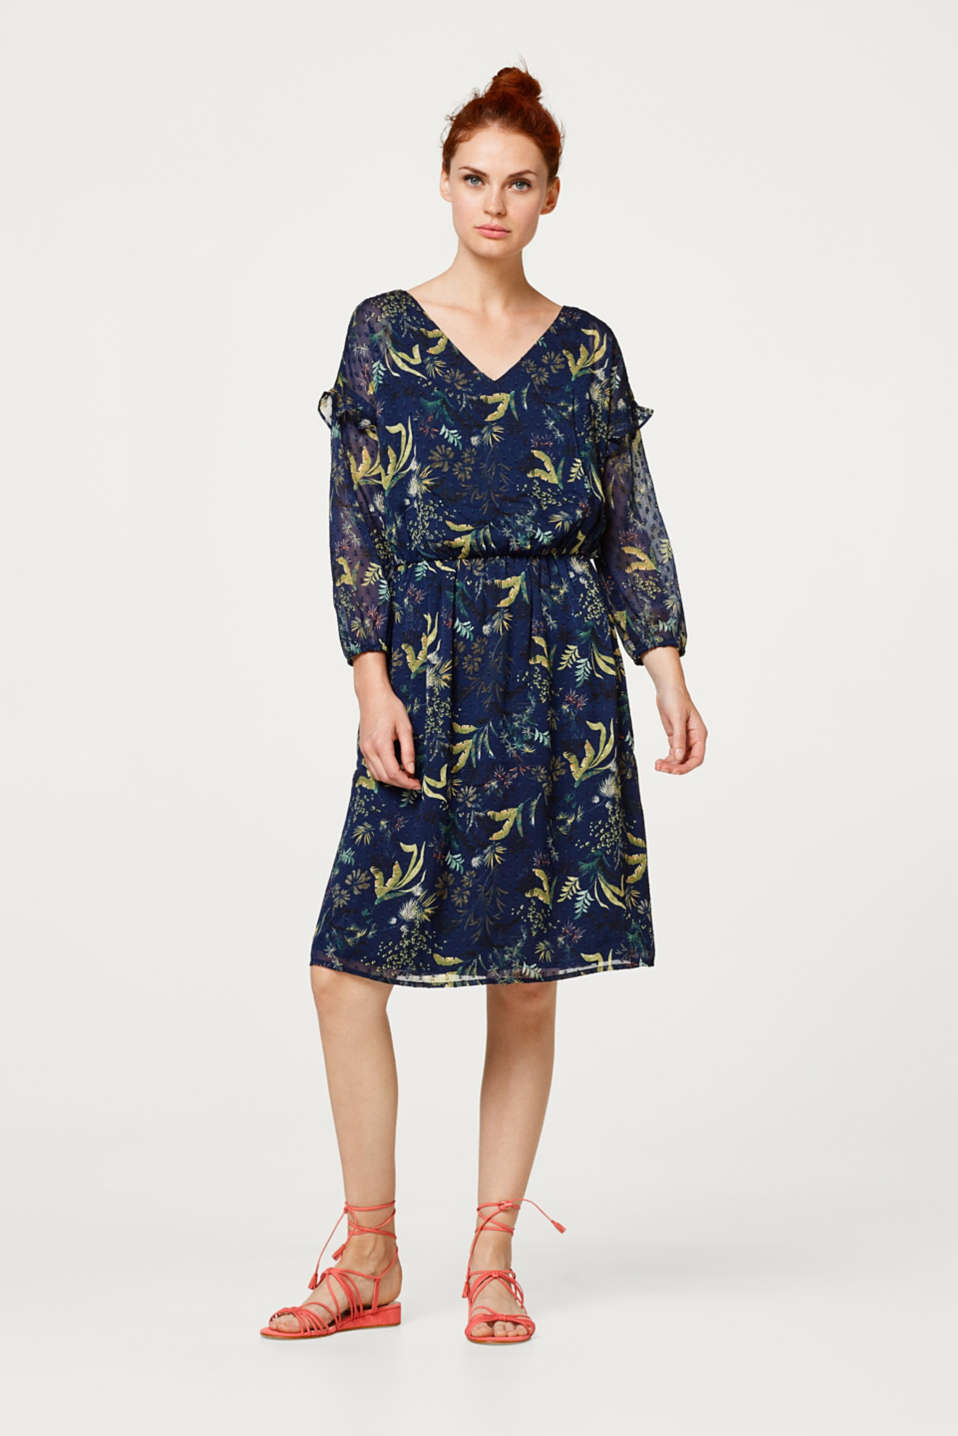 Esprit - Lightweight chiffon dress with woven polka dots and a print